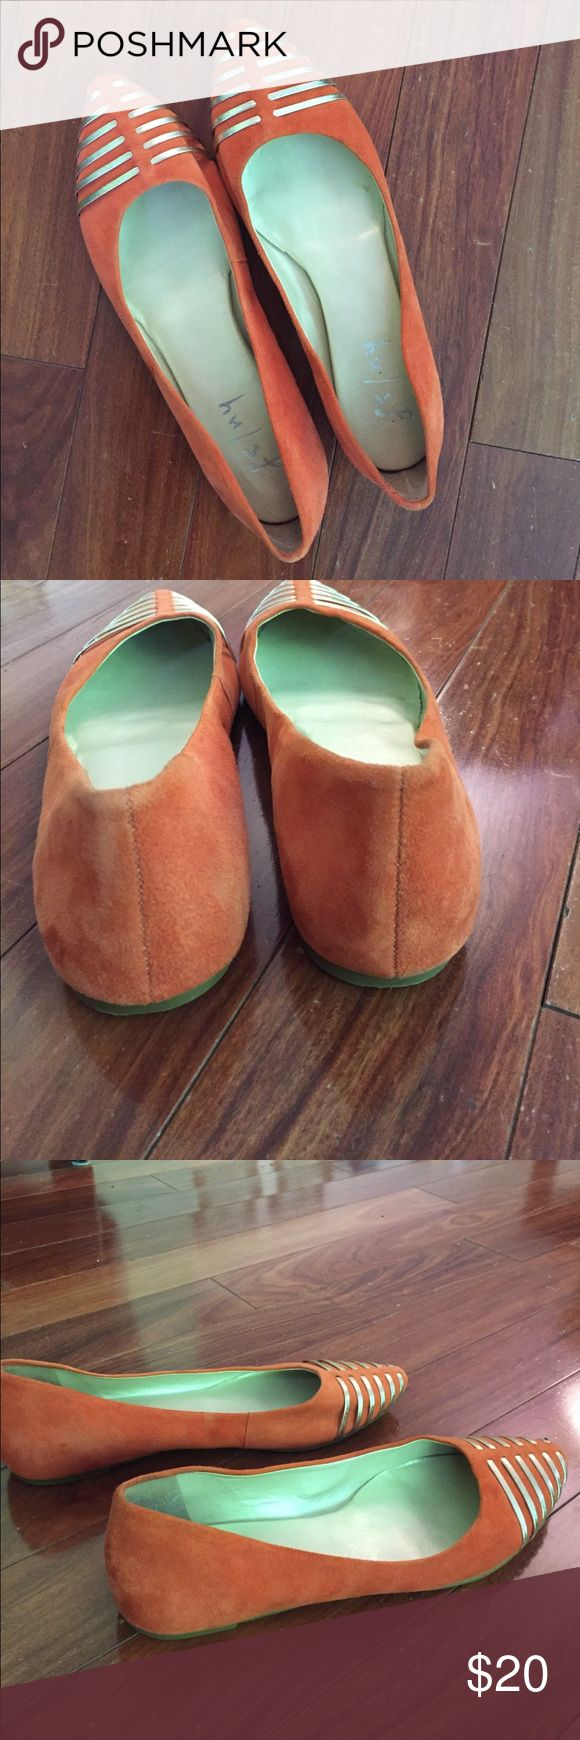 Orange/gold pointed toe flats Hardly worn and in good condition; material is suede like. Super cute and comfortable. Great summer color! Brand says fs/ny. Purchased at Nordstrom Nordstrom Shoes Flats & Loafers